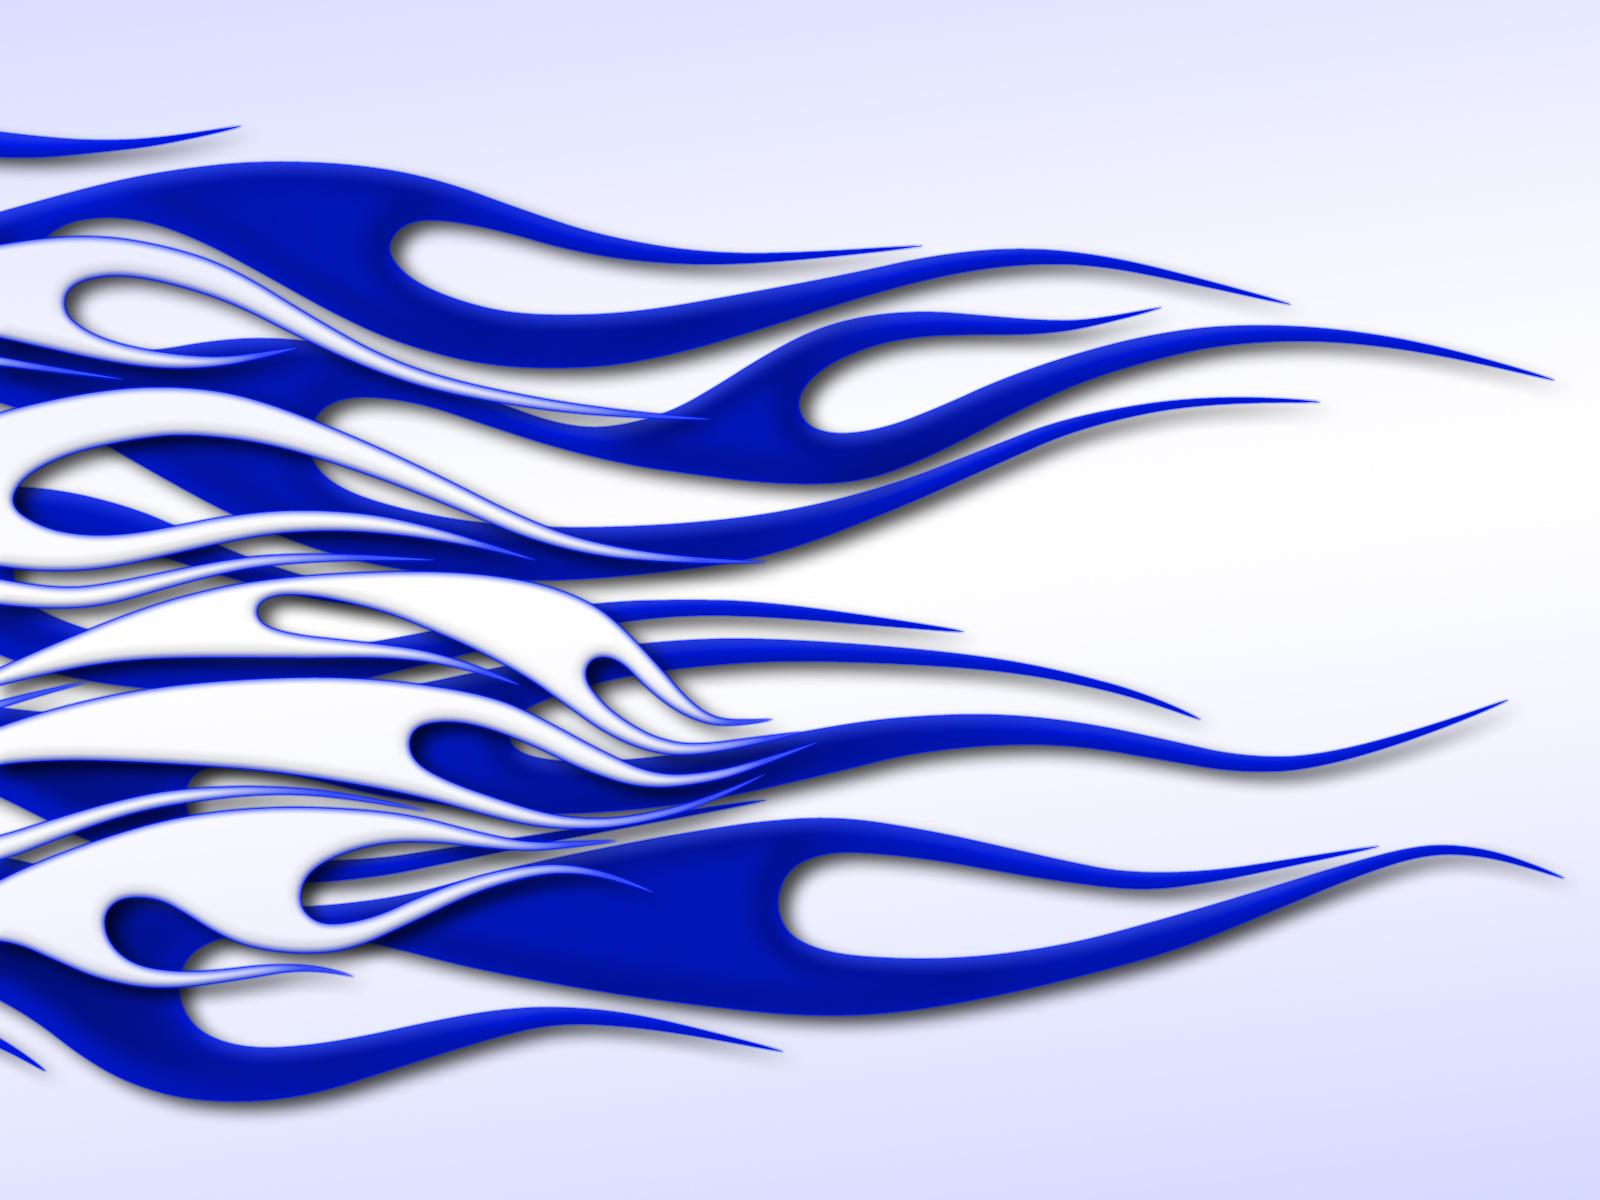 flames-white on blue on white by jbensch